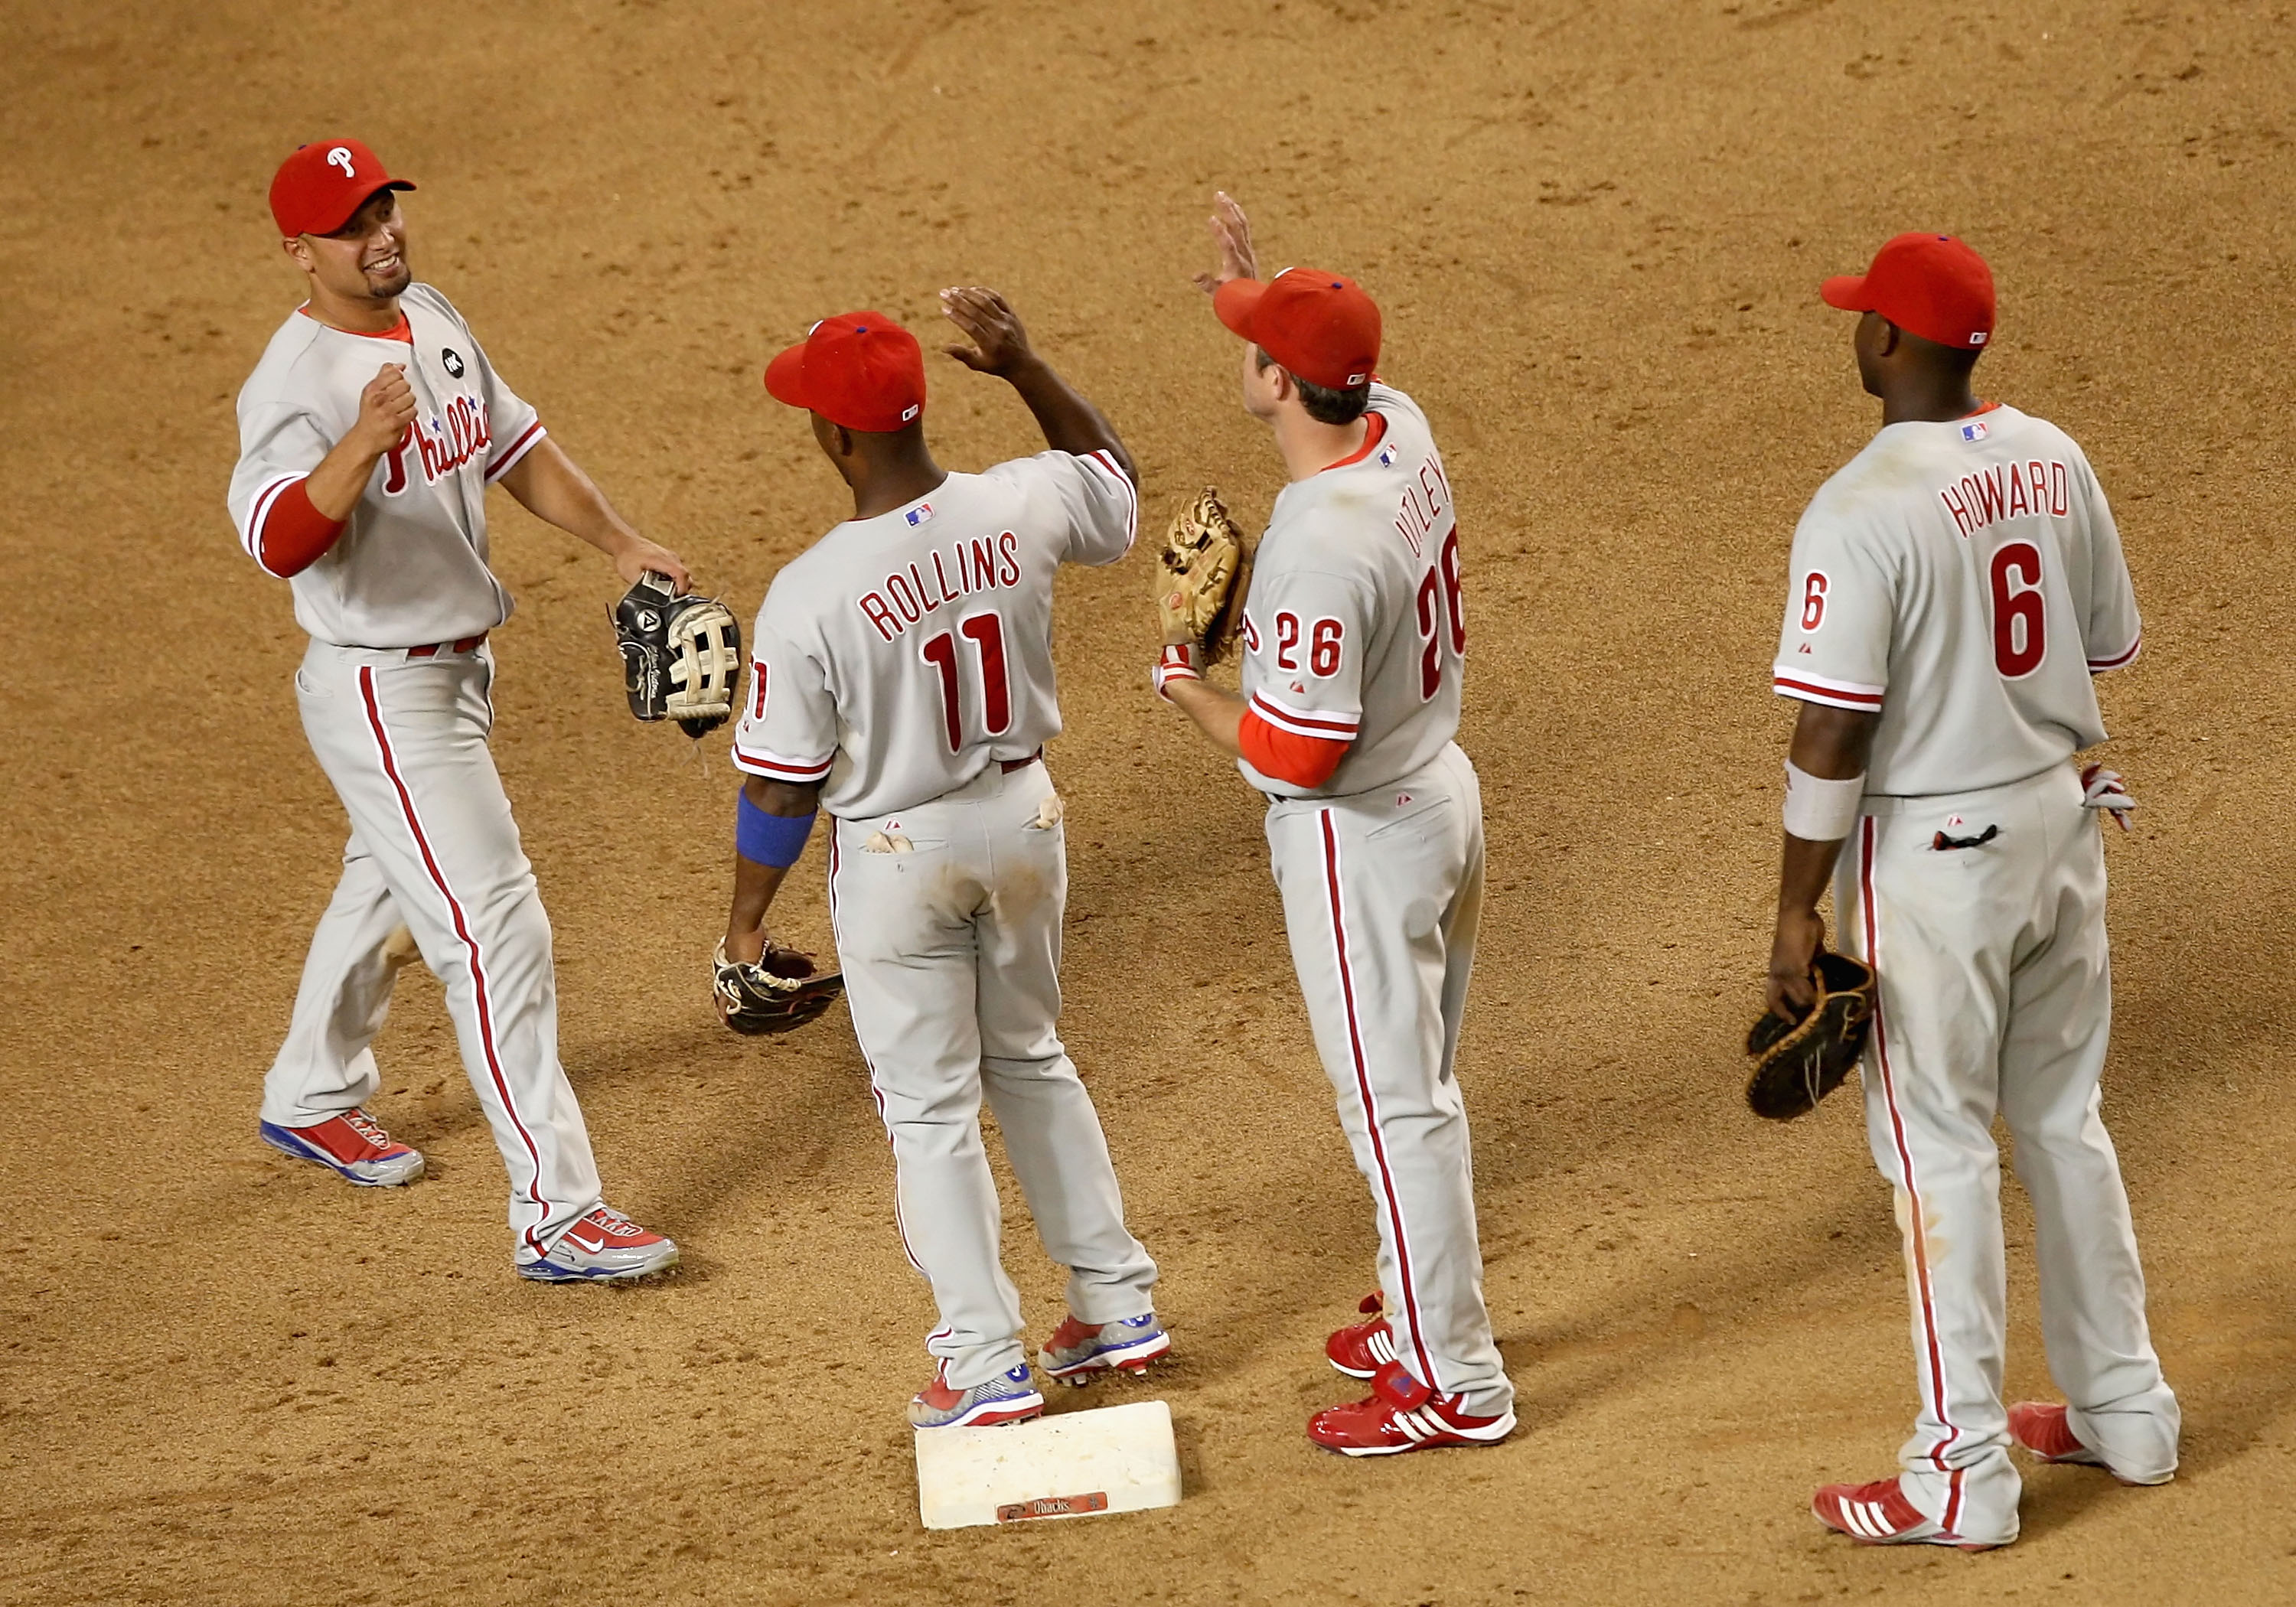 PHOENIX - JULY 28:  (L-R) Shane Victorino #8 of the Philadelphia Phillies celebrates with teammates Jimmy Rollins #11, Chase Utley #26 and Ryan Howard #6 after defeating the Arizona Diamondbacks during the major league baseball game at Chase Field on July